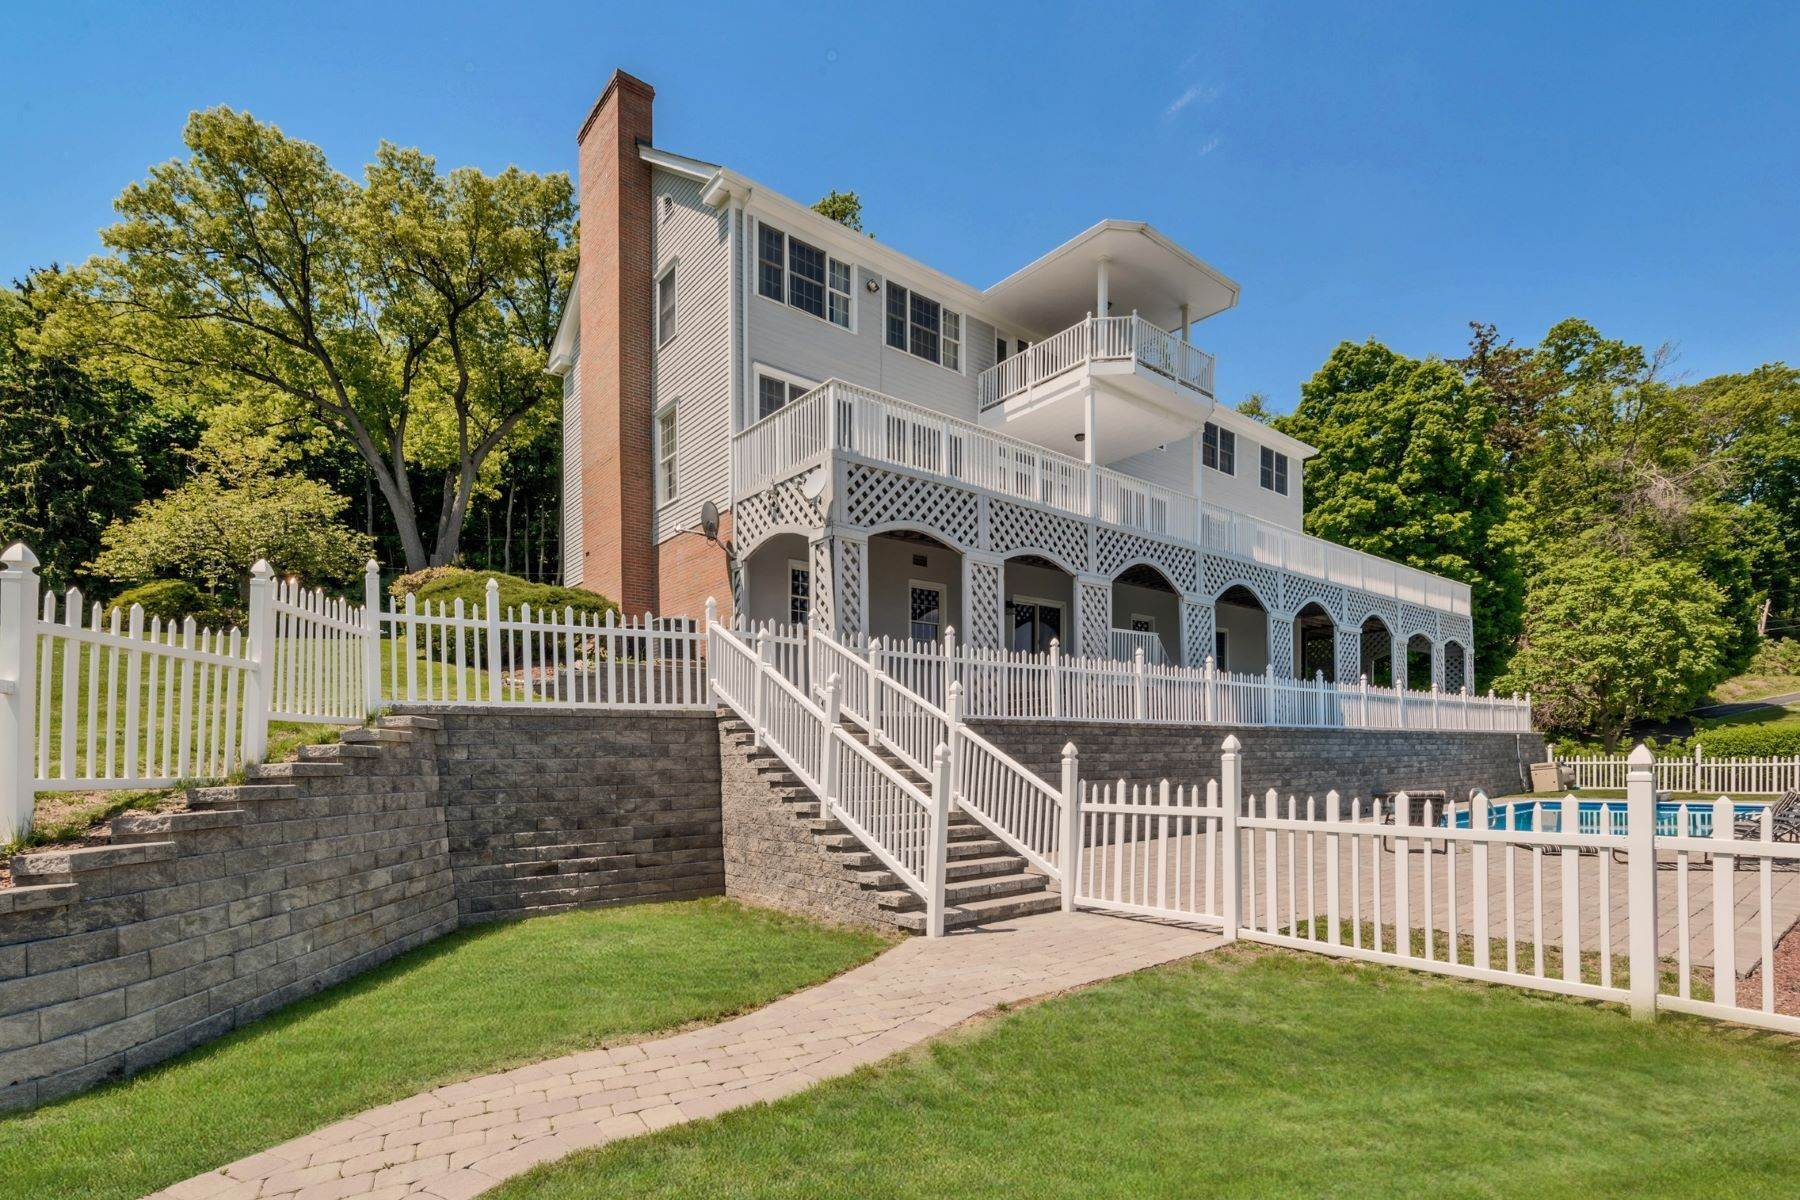 Single Family Homes for Sale at Majestic Hudson River Views 578 River Road Newburgh, New York 12550 United States